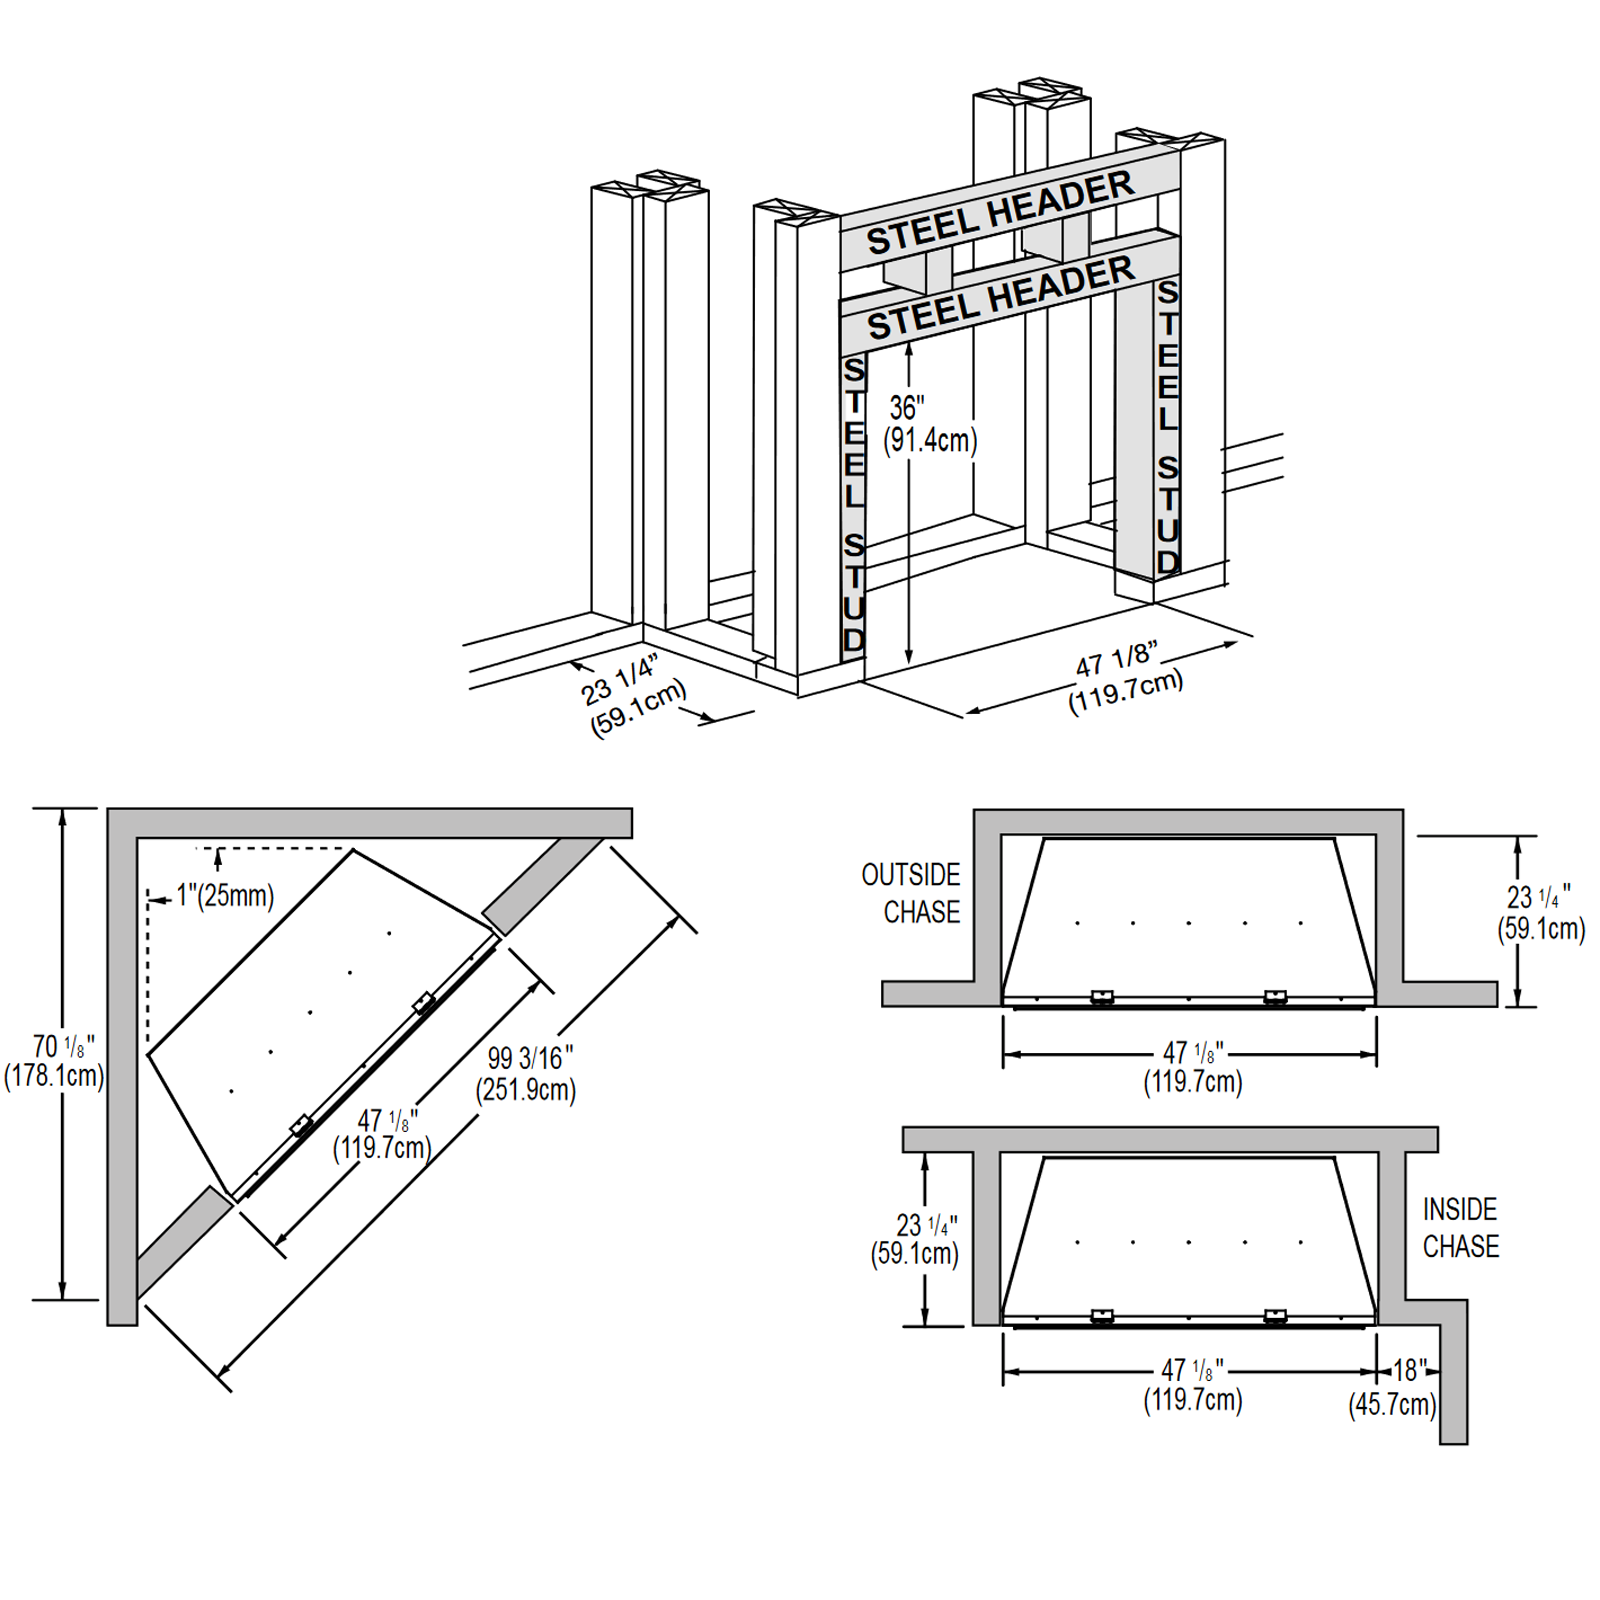 GSS42 Technical Drawing 2